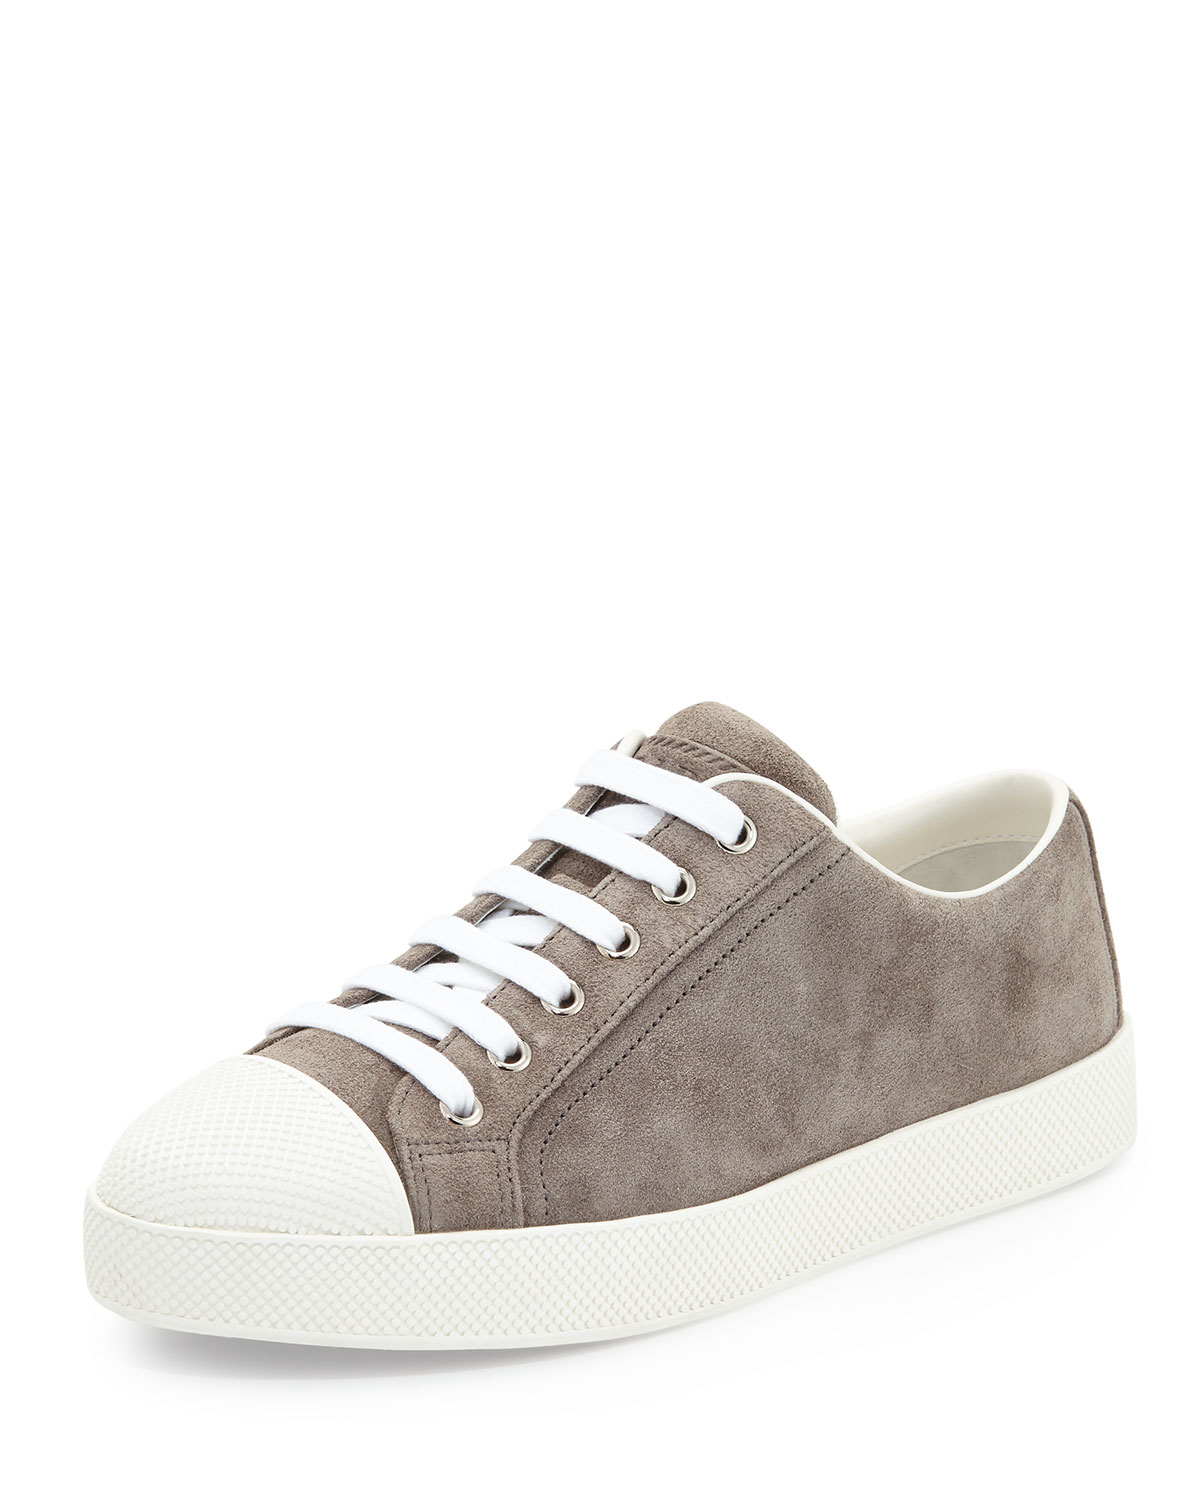 Ping Pong Suede Cap Toe Low Top Sneaker